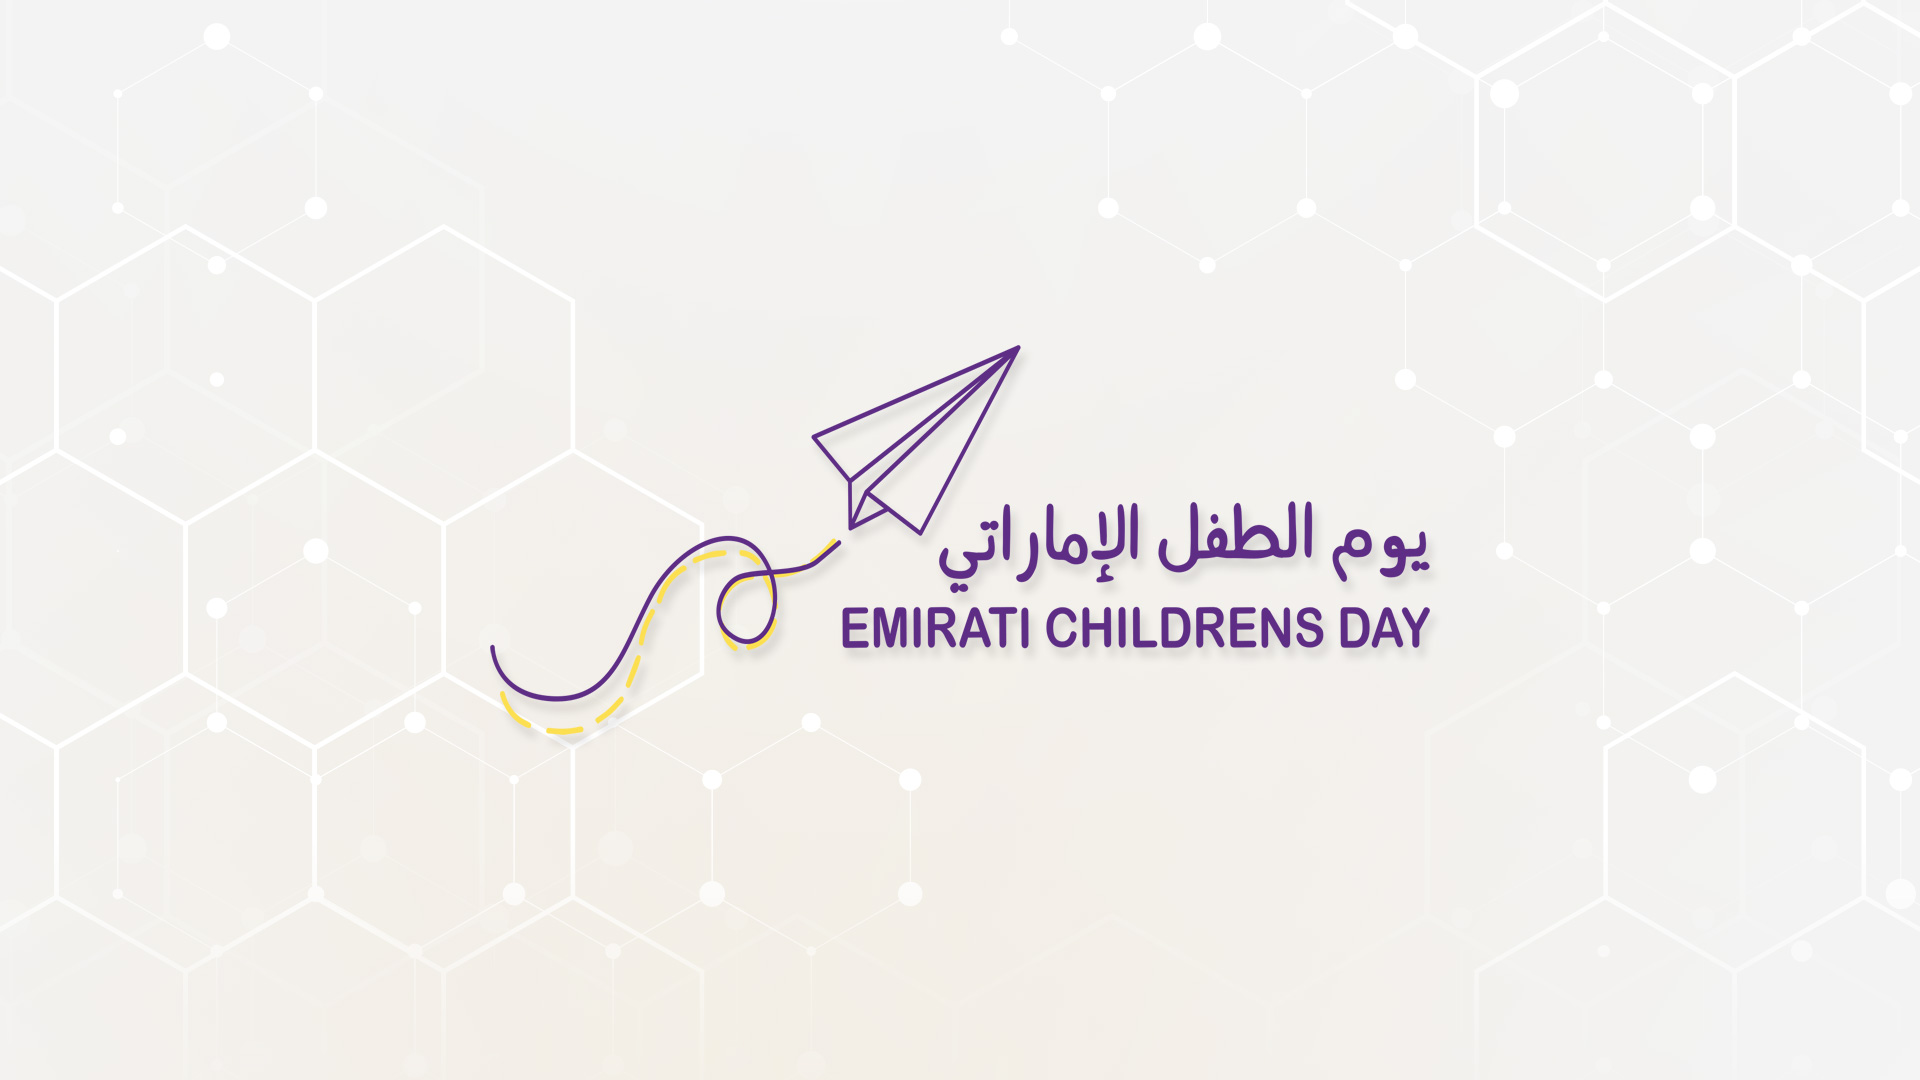 Emirati Children's Day